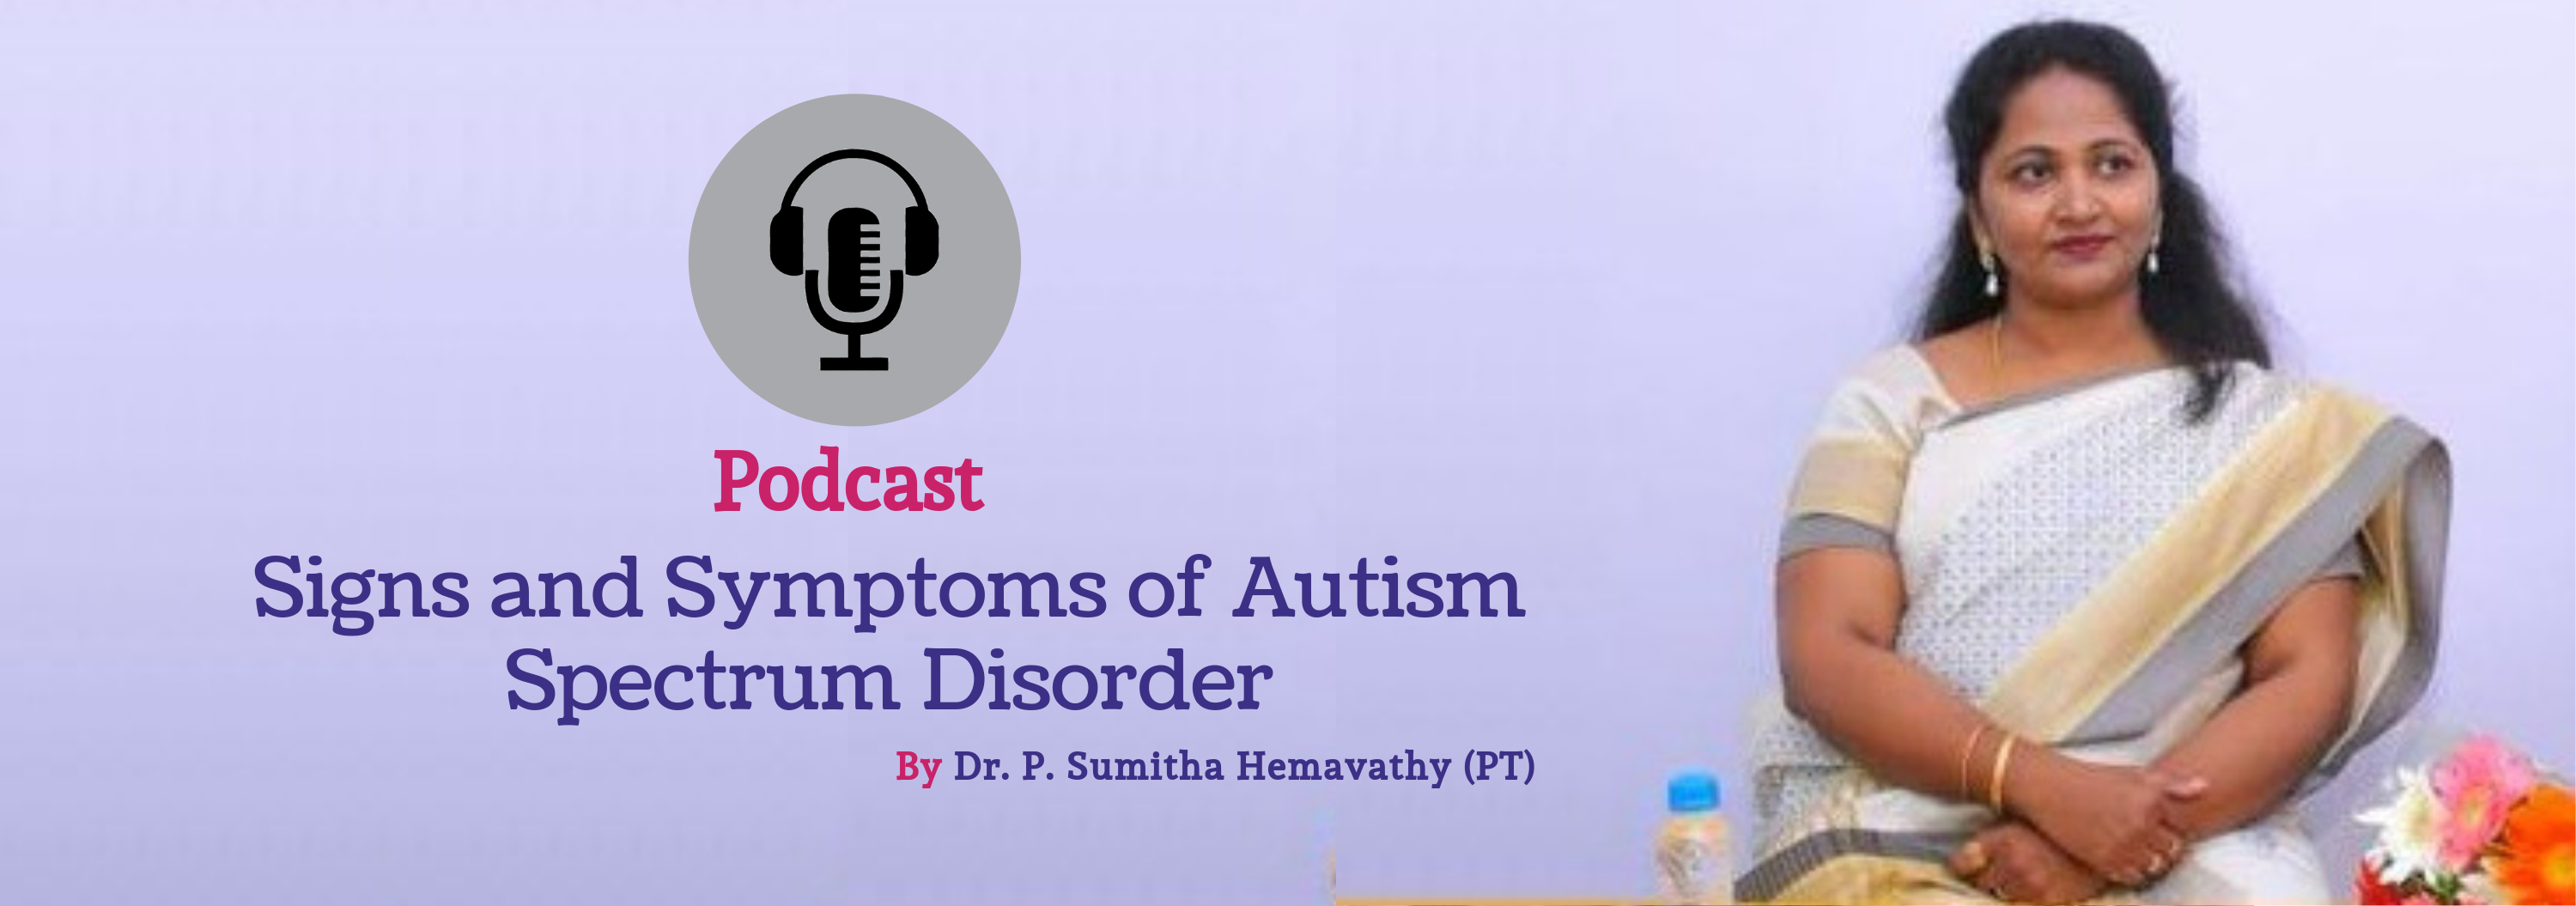 Signs and Symptoms of Autism Spectrum Disorder